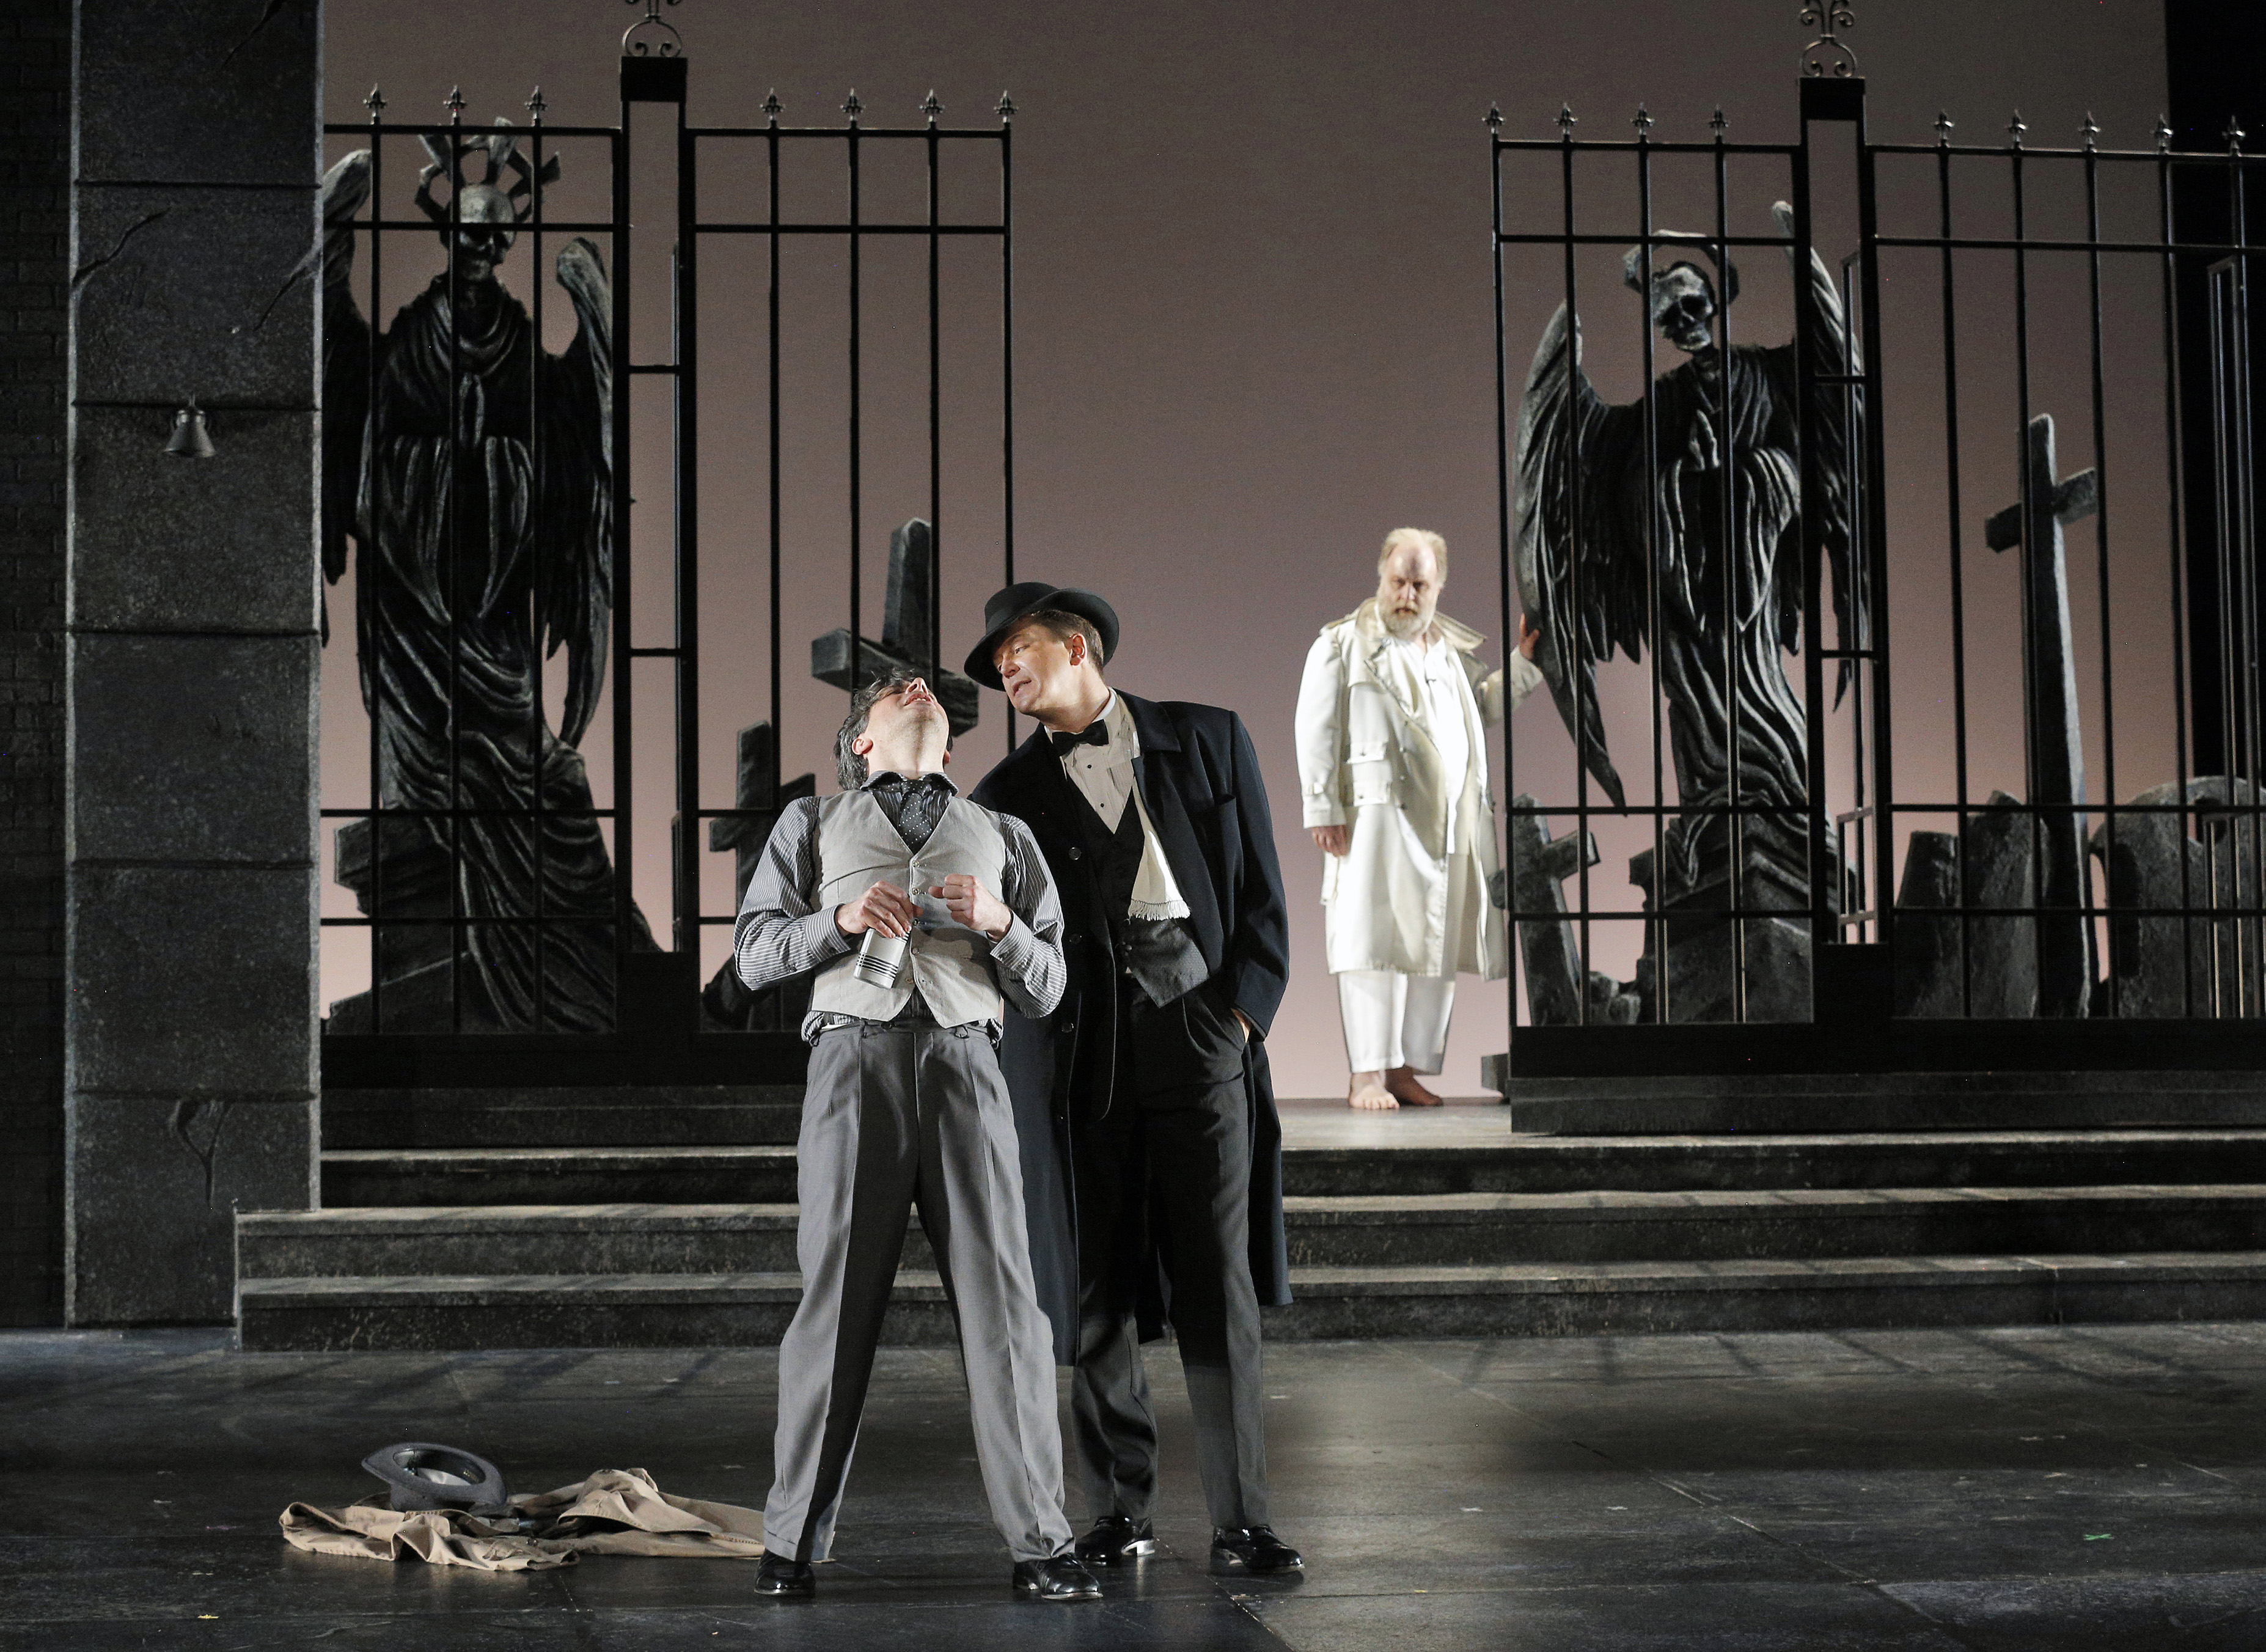 CAN'T FIGHT THIS FEELING: Lyric Opera 'Giovanni' exploits visual, emotional contrasts